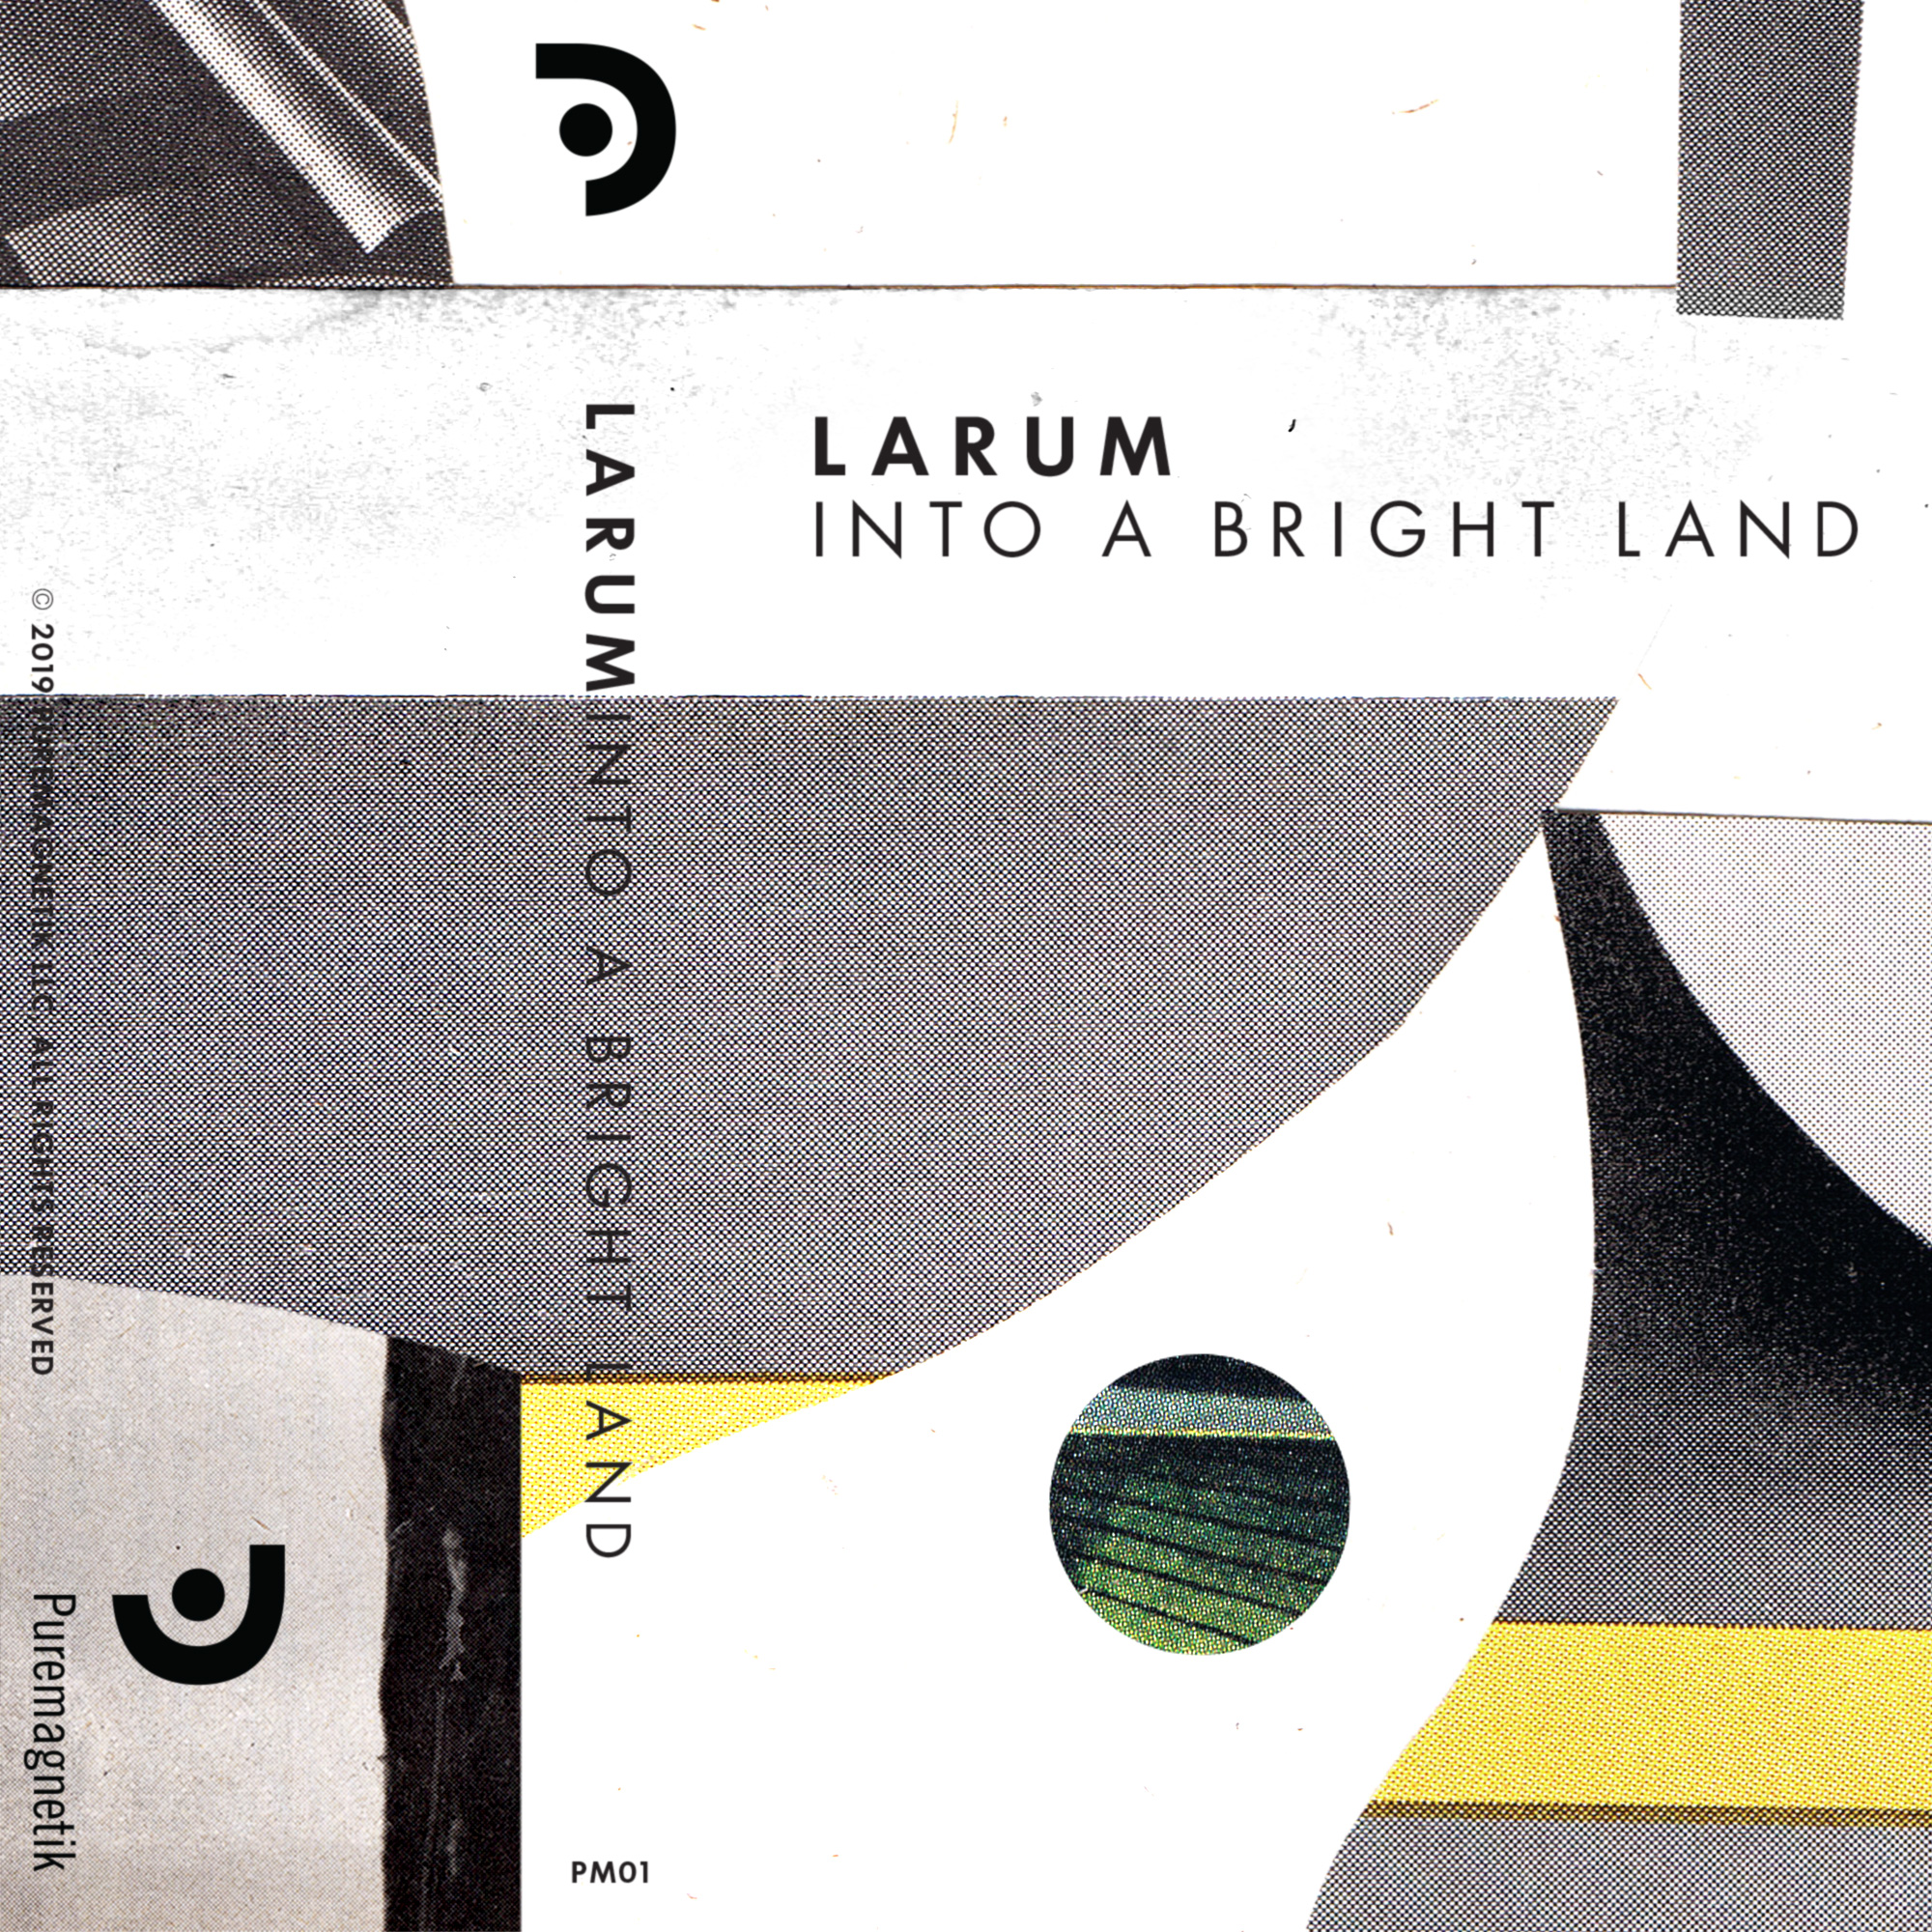 "Larum, Into a Bright Land, 2019   Best new ambient on Bandcamp: April 2019   ""Into a Bright Land is in turns crystalline and delicate, warm and lush as a thick blanket."" -Peter Kirn, Create Digital Music  ""...many elements appear that make evident Frank's willingness to push his sound into unexpected places. For me, that makes Into a Bright Land all the more profound an experience."" -Ari Delaney, Bandcamp  Into a Bright Land tells a story of California's natural places, through field recordings, immense synthetic textures and acousmatic sounds. The album was born from acoustic ecology studies by Puremagnetik sound designer Micah Frank; captured on the shores of Point Reyes to mountains in Big Sur and ancient forests of Yosemite. It was later assembled in the studio and augmented with algorithmic programming in Csound.  The result is a journey through landscapes possibly visited by the likes of Boards Of Canada, Susumu Yakota or GAS. It continues these musical conversations and establishes a solid foundation for the launch of the Puremagnetik label; which has plans for a packed release schedule this year.  Credits  Released March 21, 2019  Produced and recorded by Micah Frank  Field recordings from Big Sur State Park, Yosemite National Park and Sequoia National Park  Artwork by John Whitlock  Mastered by Taylor Deupree at 12k"